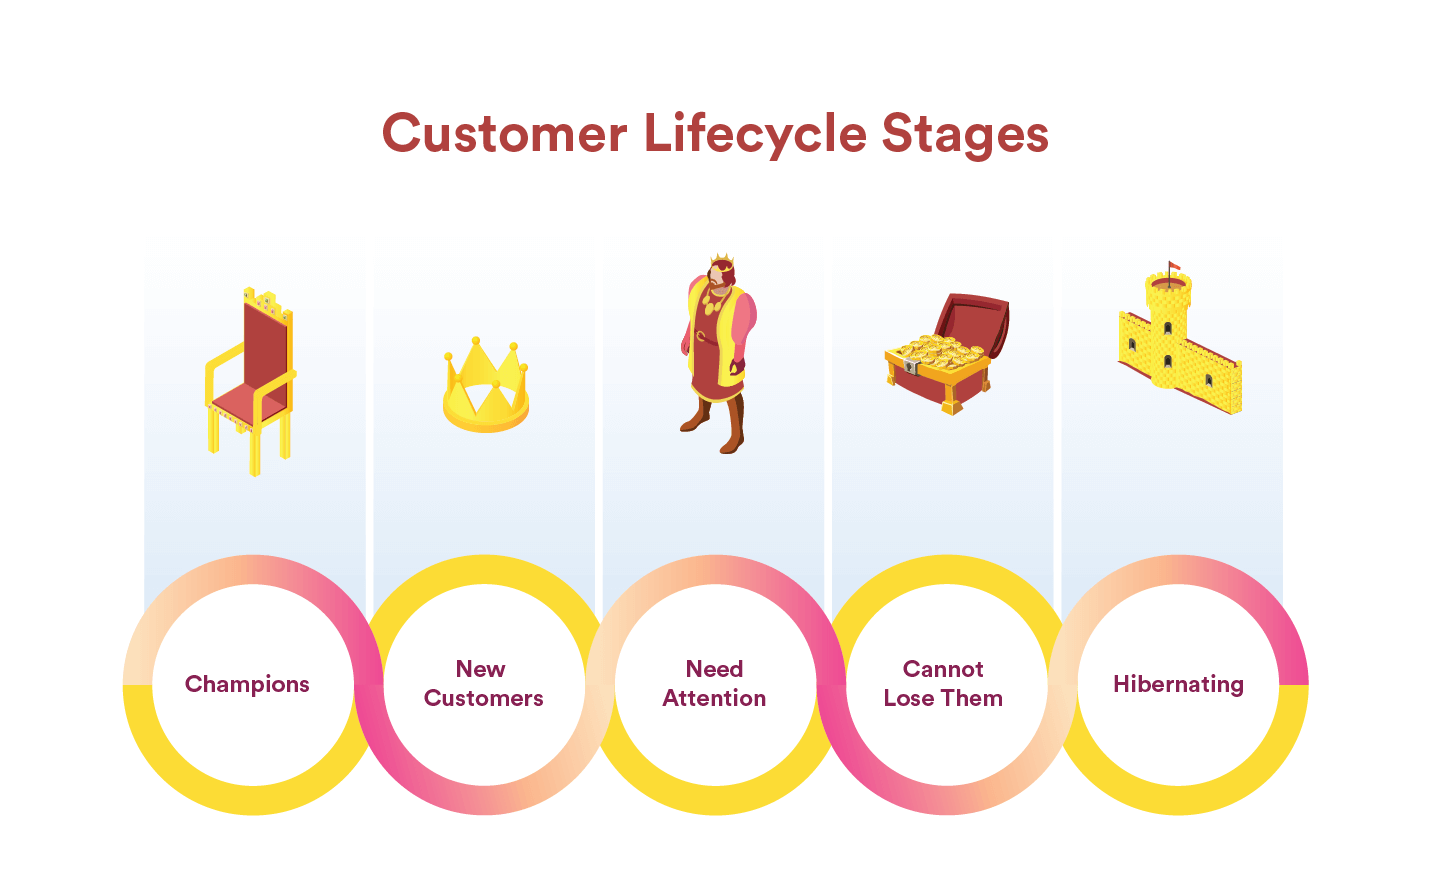 All customer lifecycle stages benefit from outstanding customer experiences